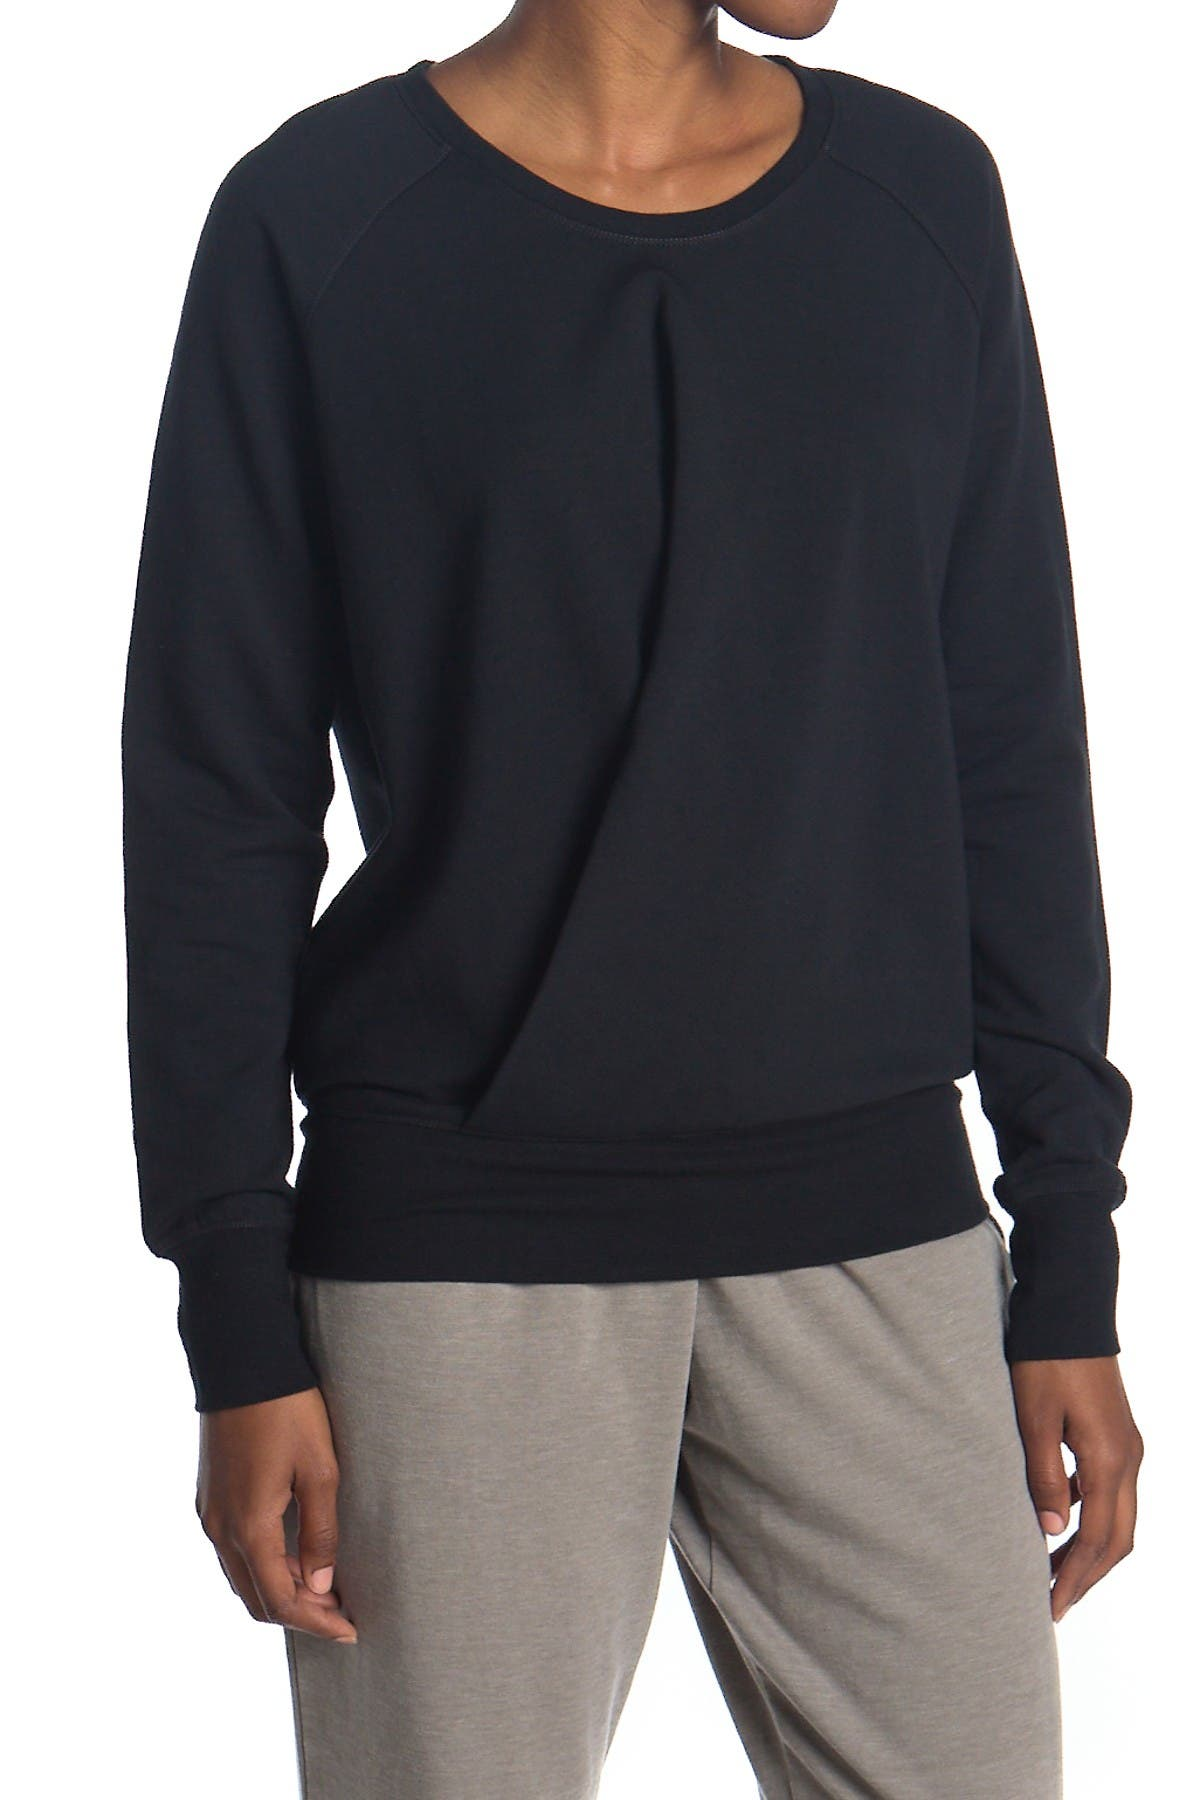 Image of Daniel Buchler Twist Crew Neck Sweatshirt